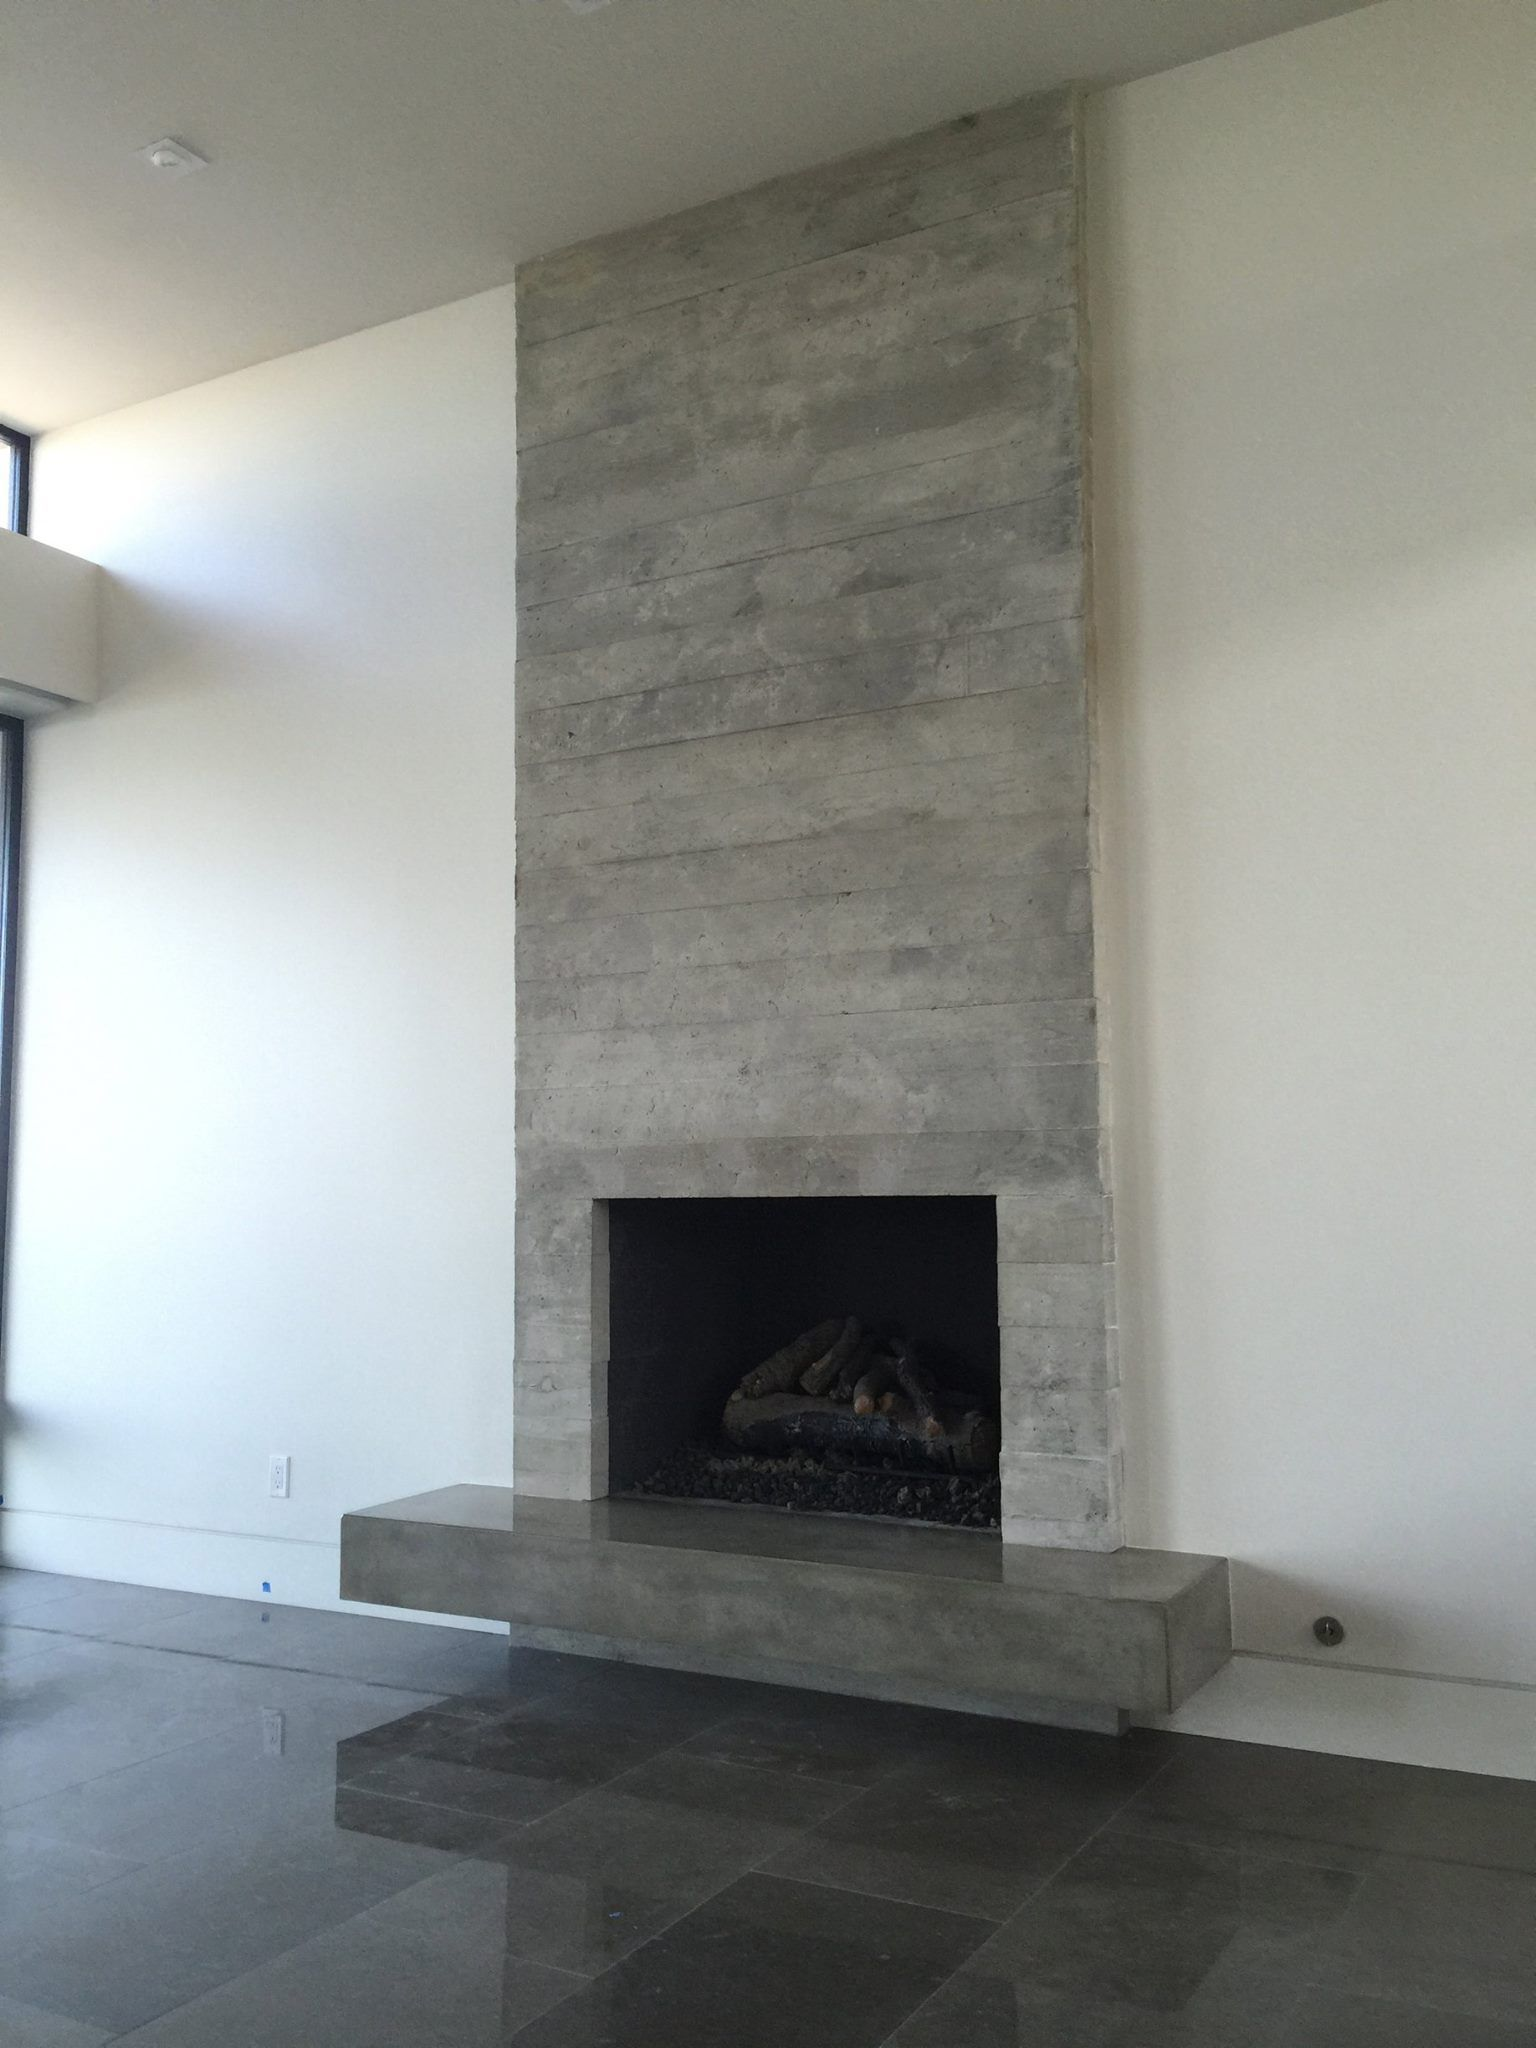 Pin On Concrete Board Formed Veener Tiles Fireplace